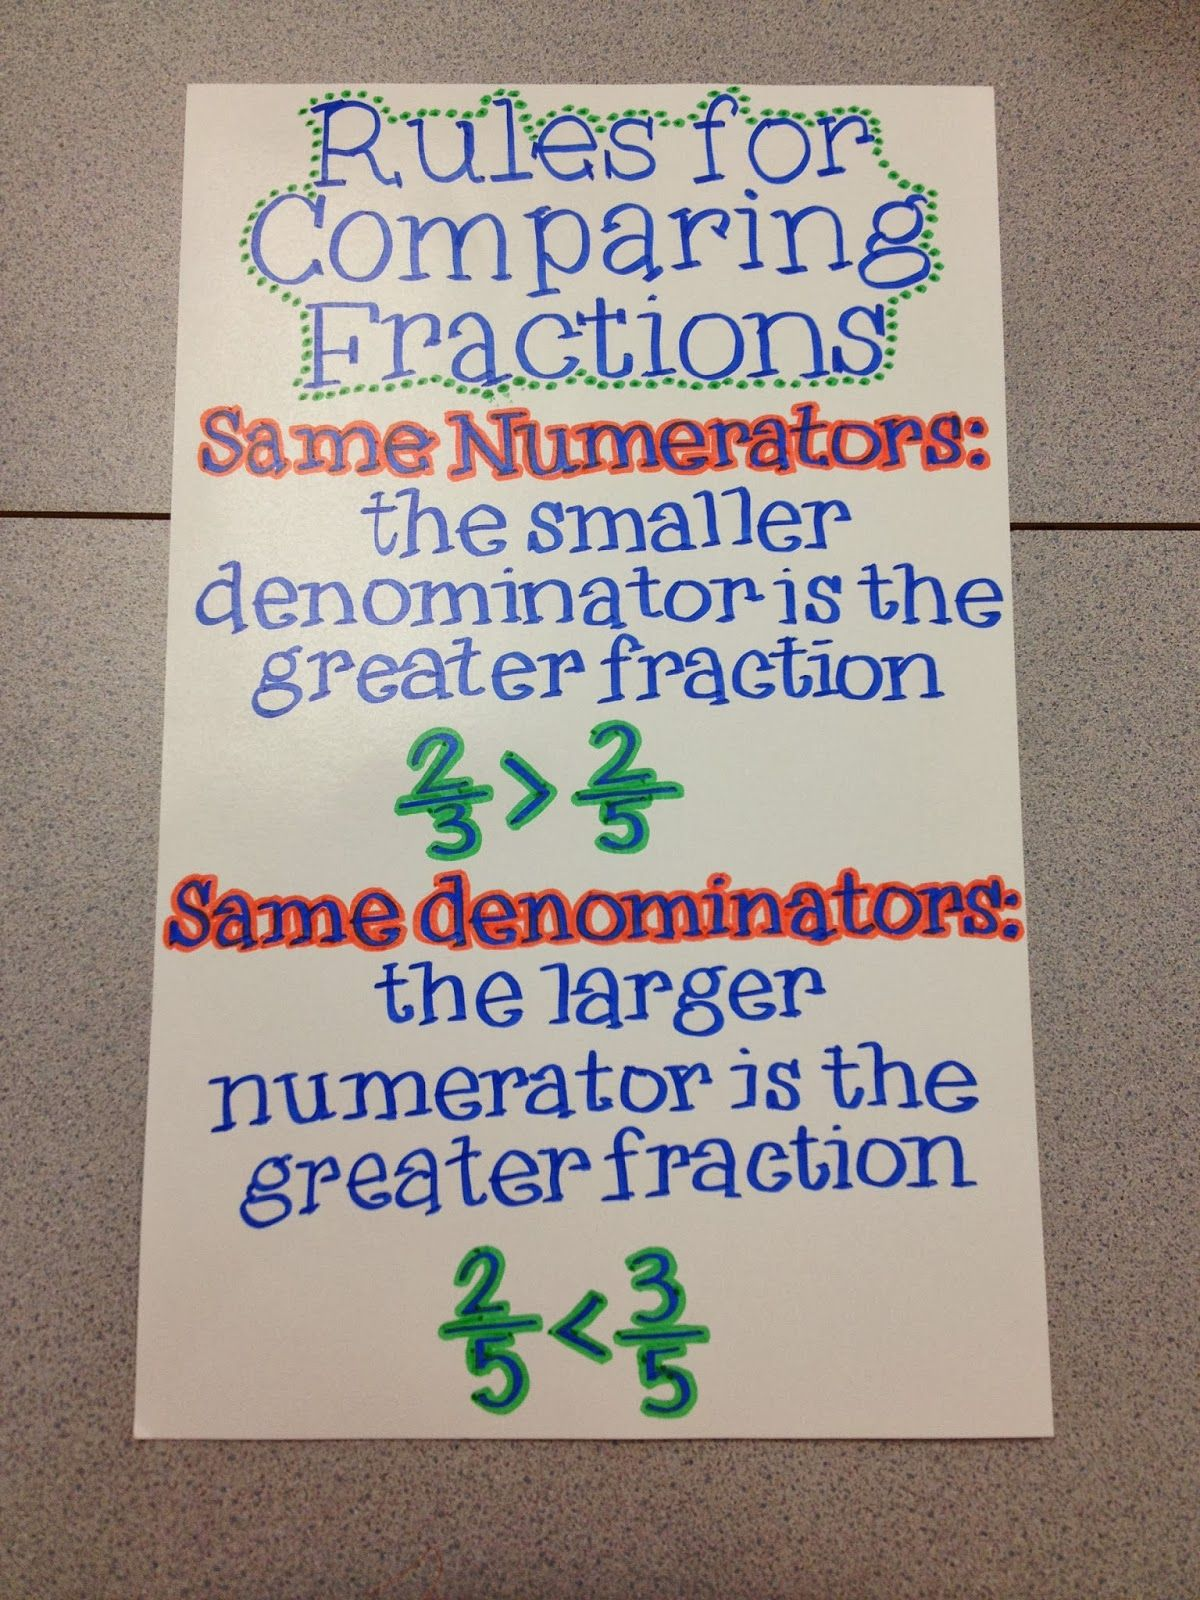 comparing fractions anchor chart. plus more anchor chart ideas on